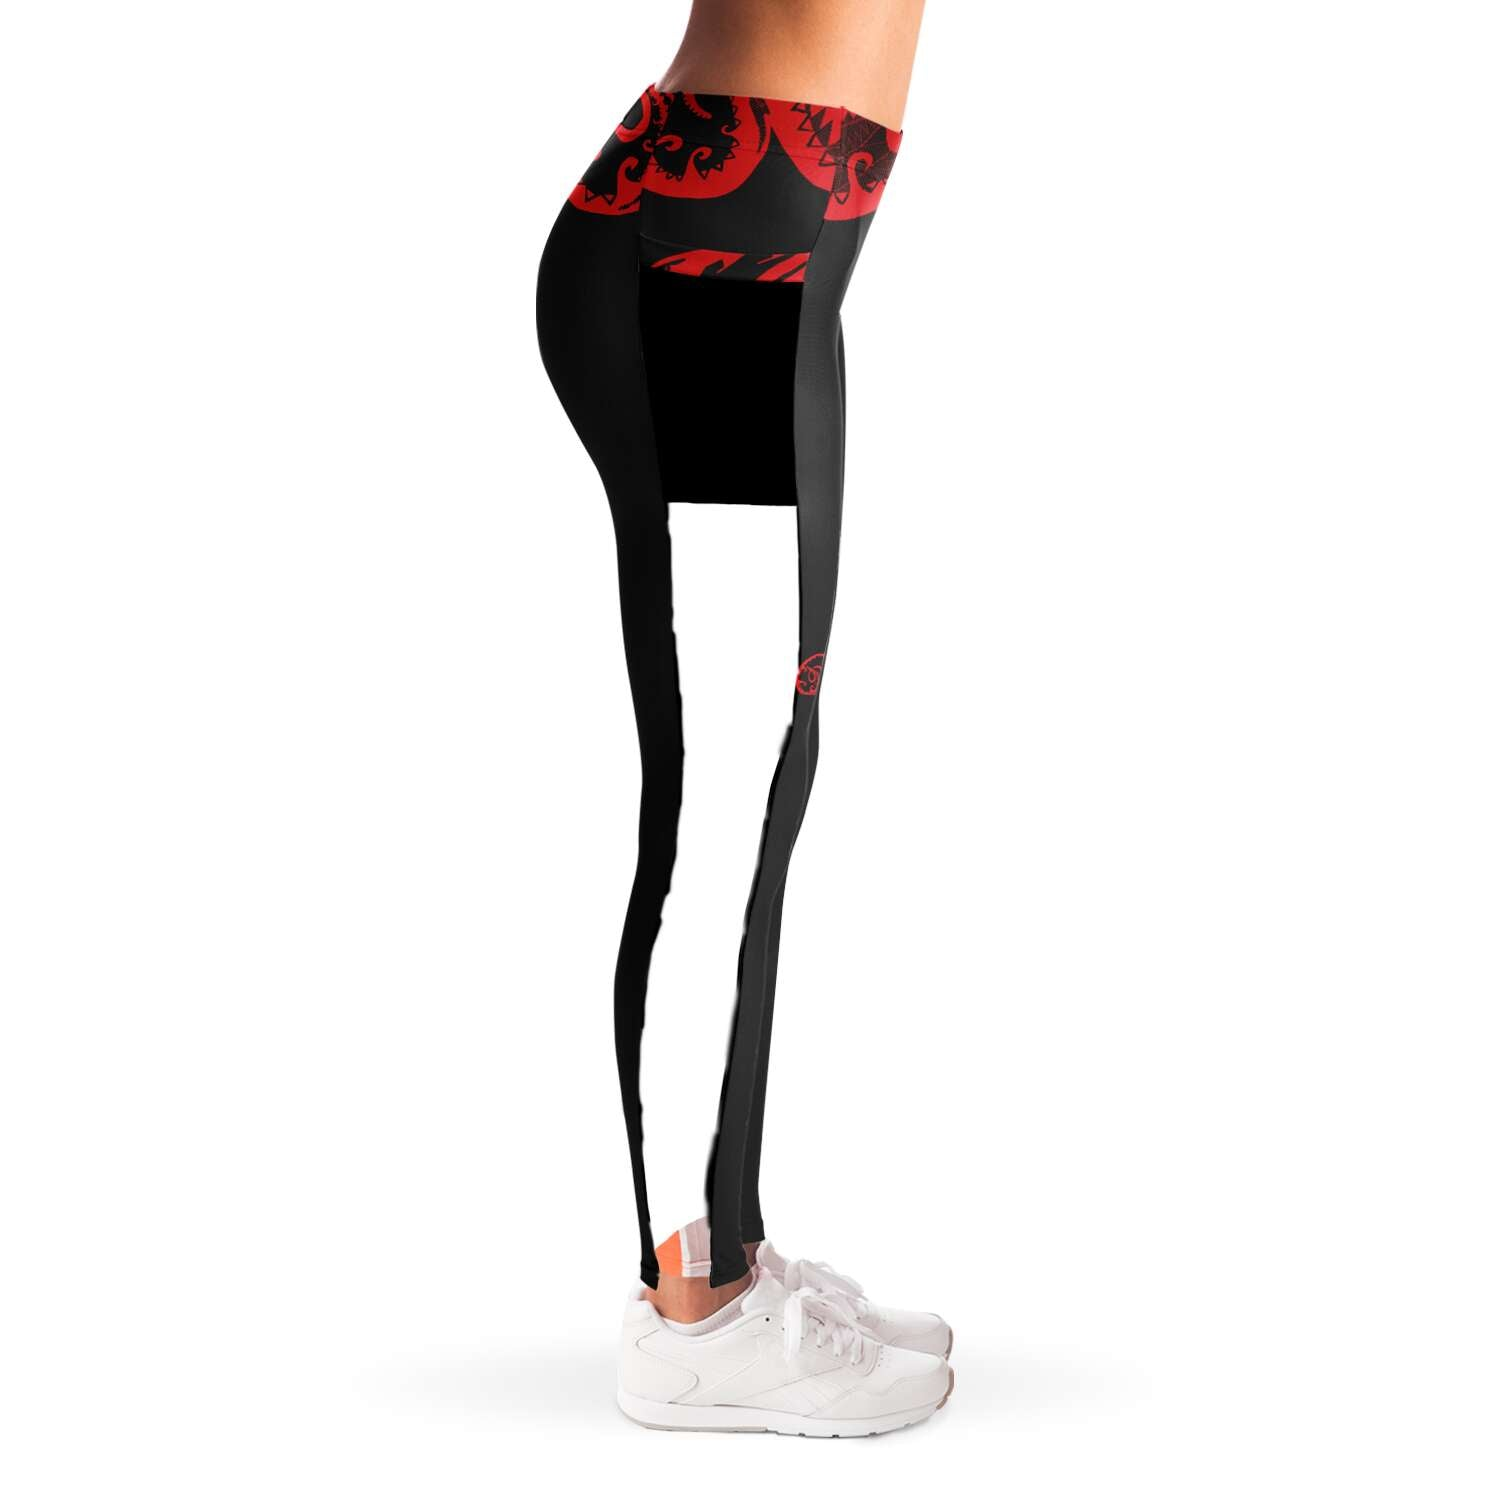 Team Venom Mesh Leggings With Pockets XS-XL